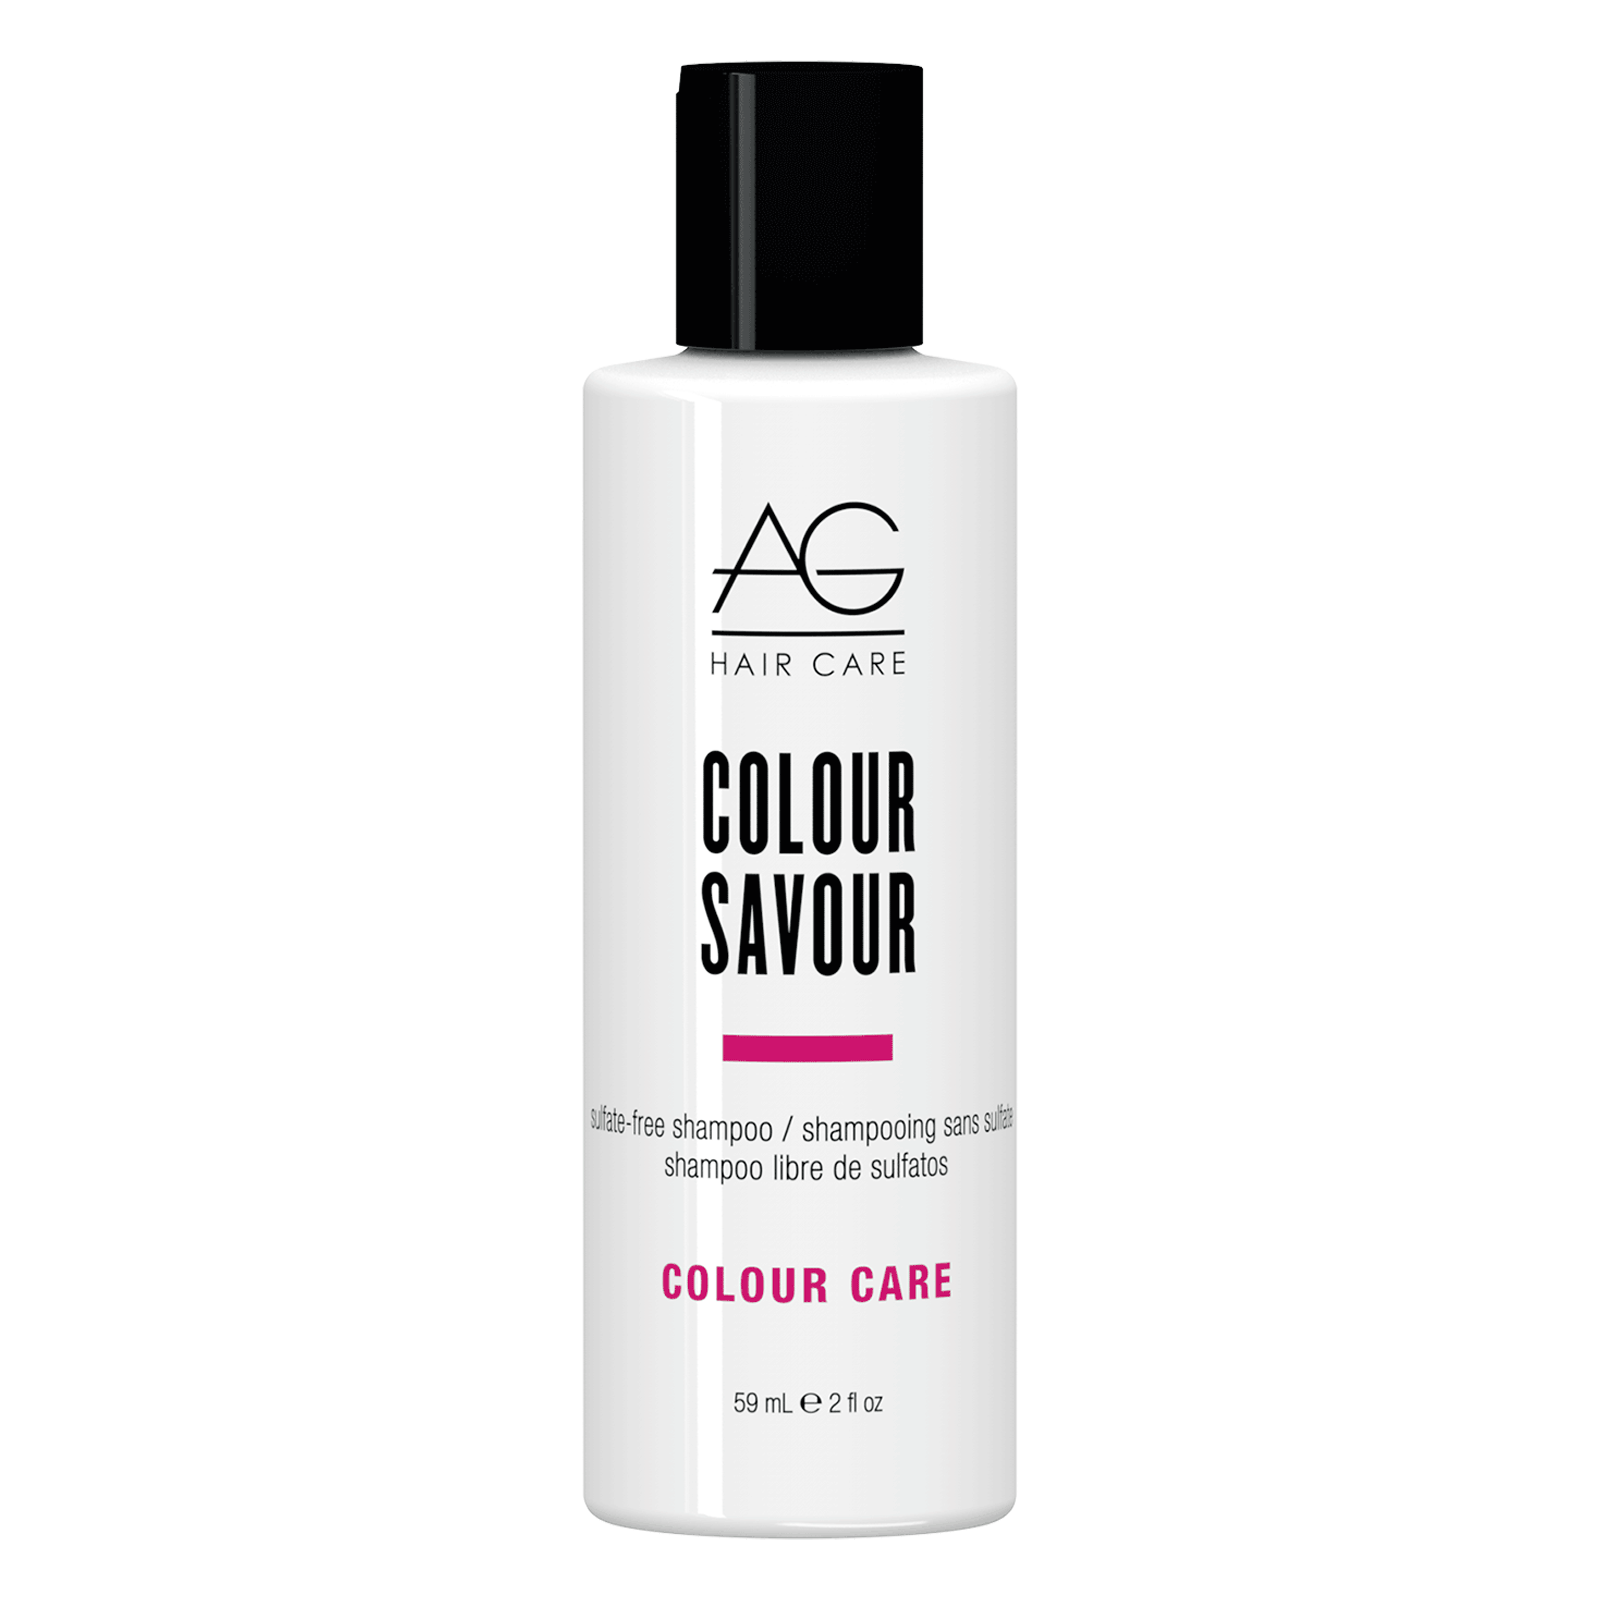 Colour Savour Shampoo - Mini Size